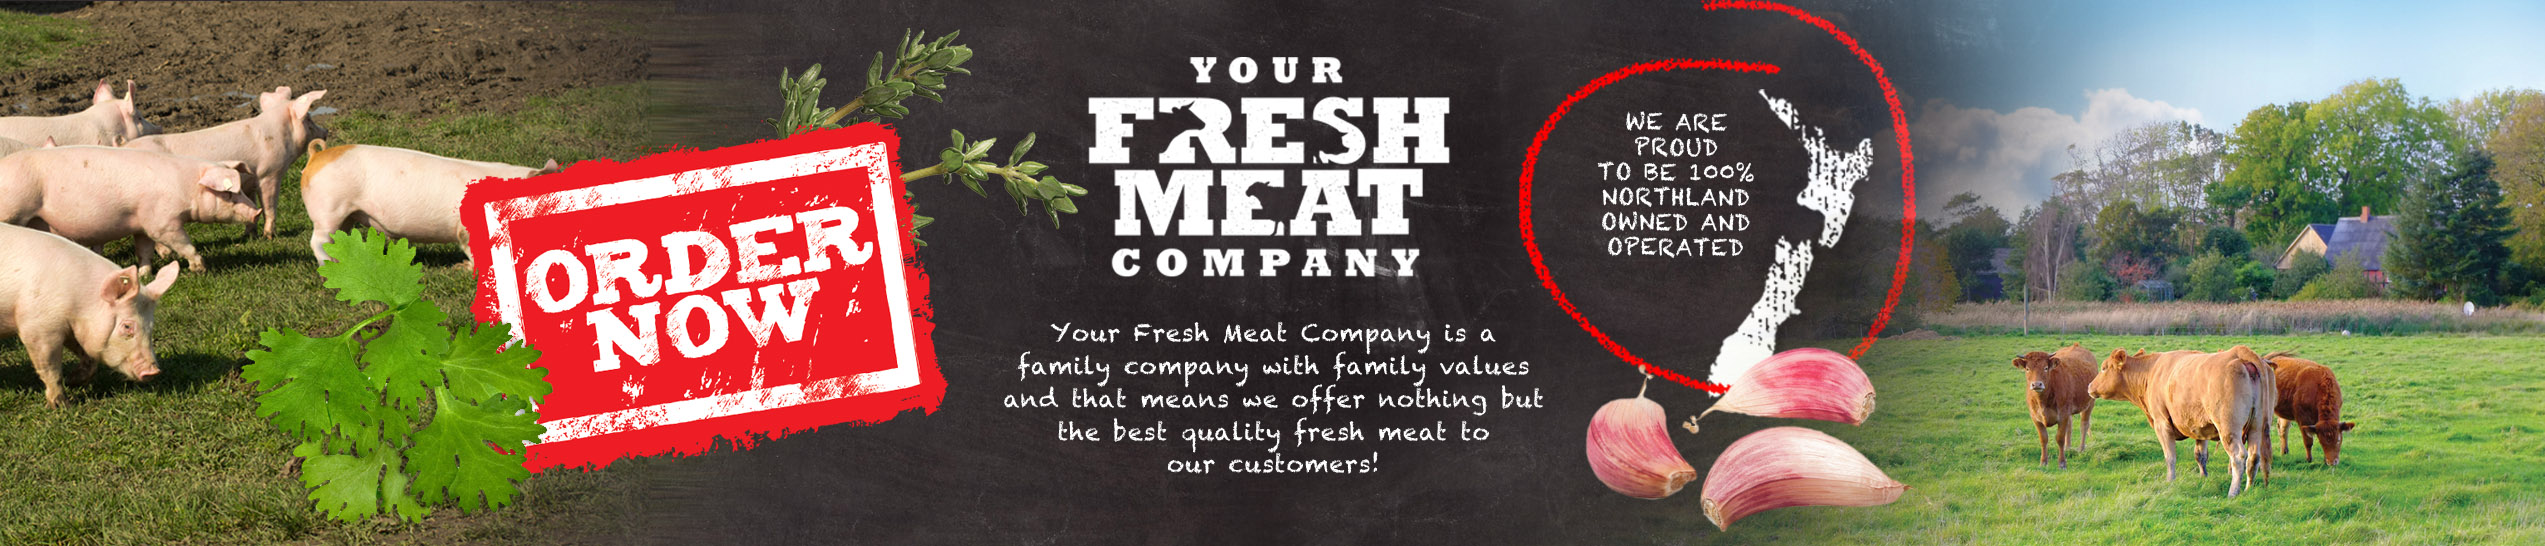 Order now. Your fresh meat company a family meat business owned and operated in northland